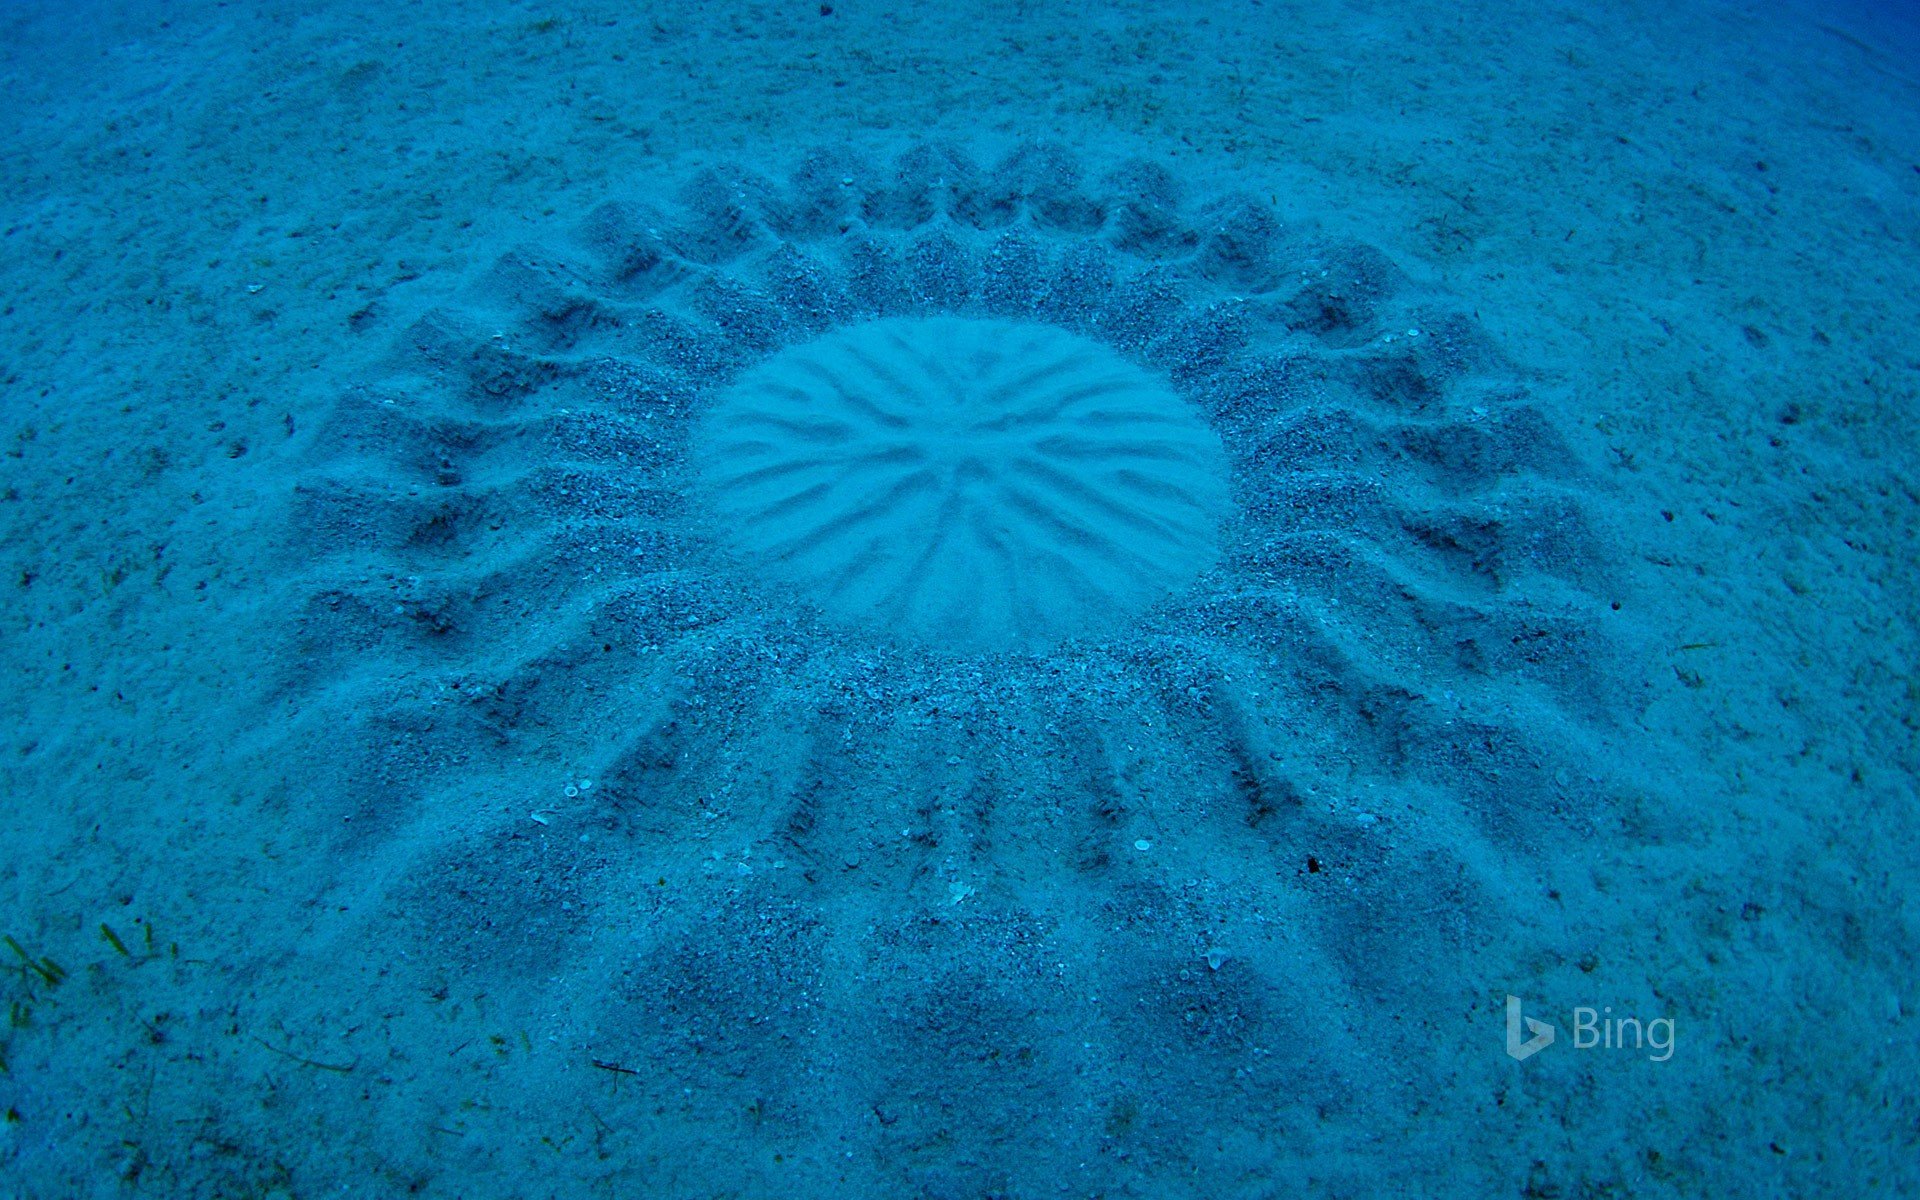 Sand patterns made by pufferfish near Amami Oshima, Kagoshima, Japan